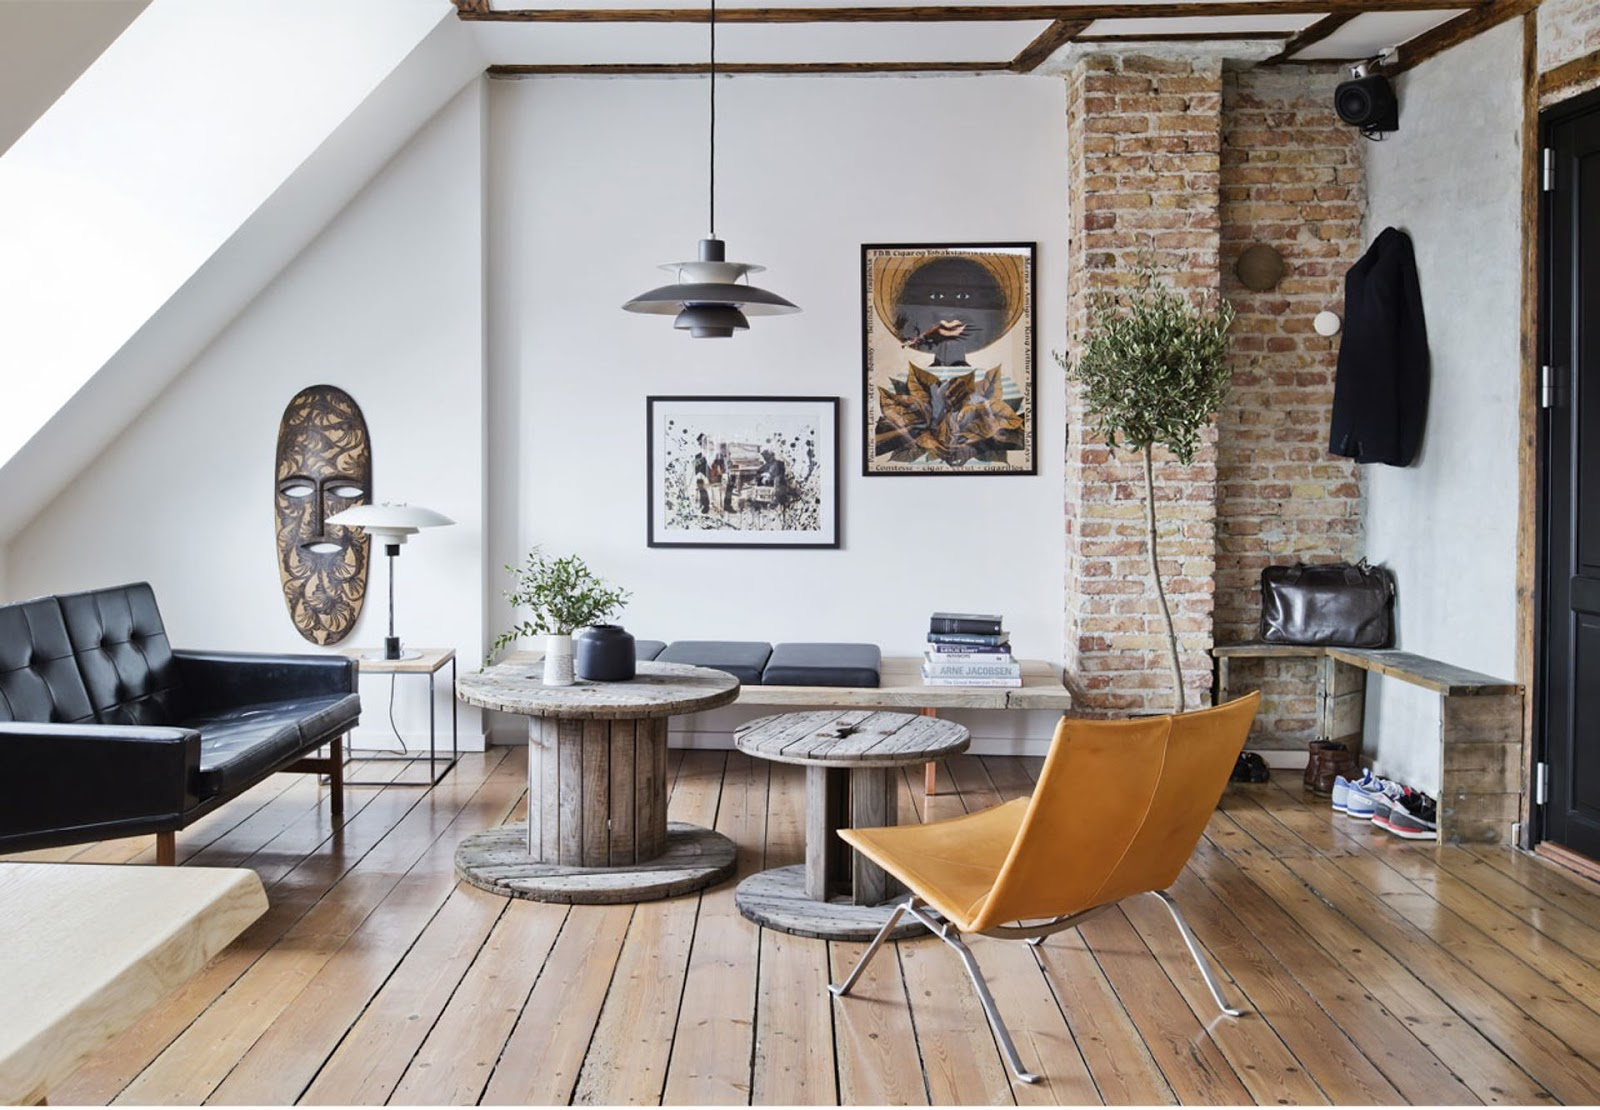 1. Rustic Is The New Modern